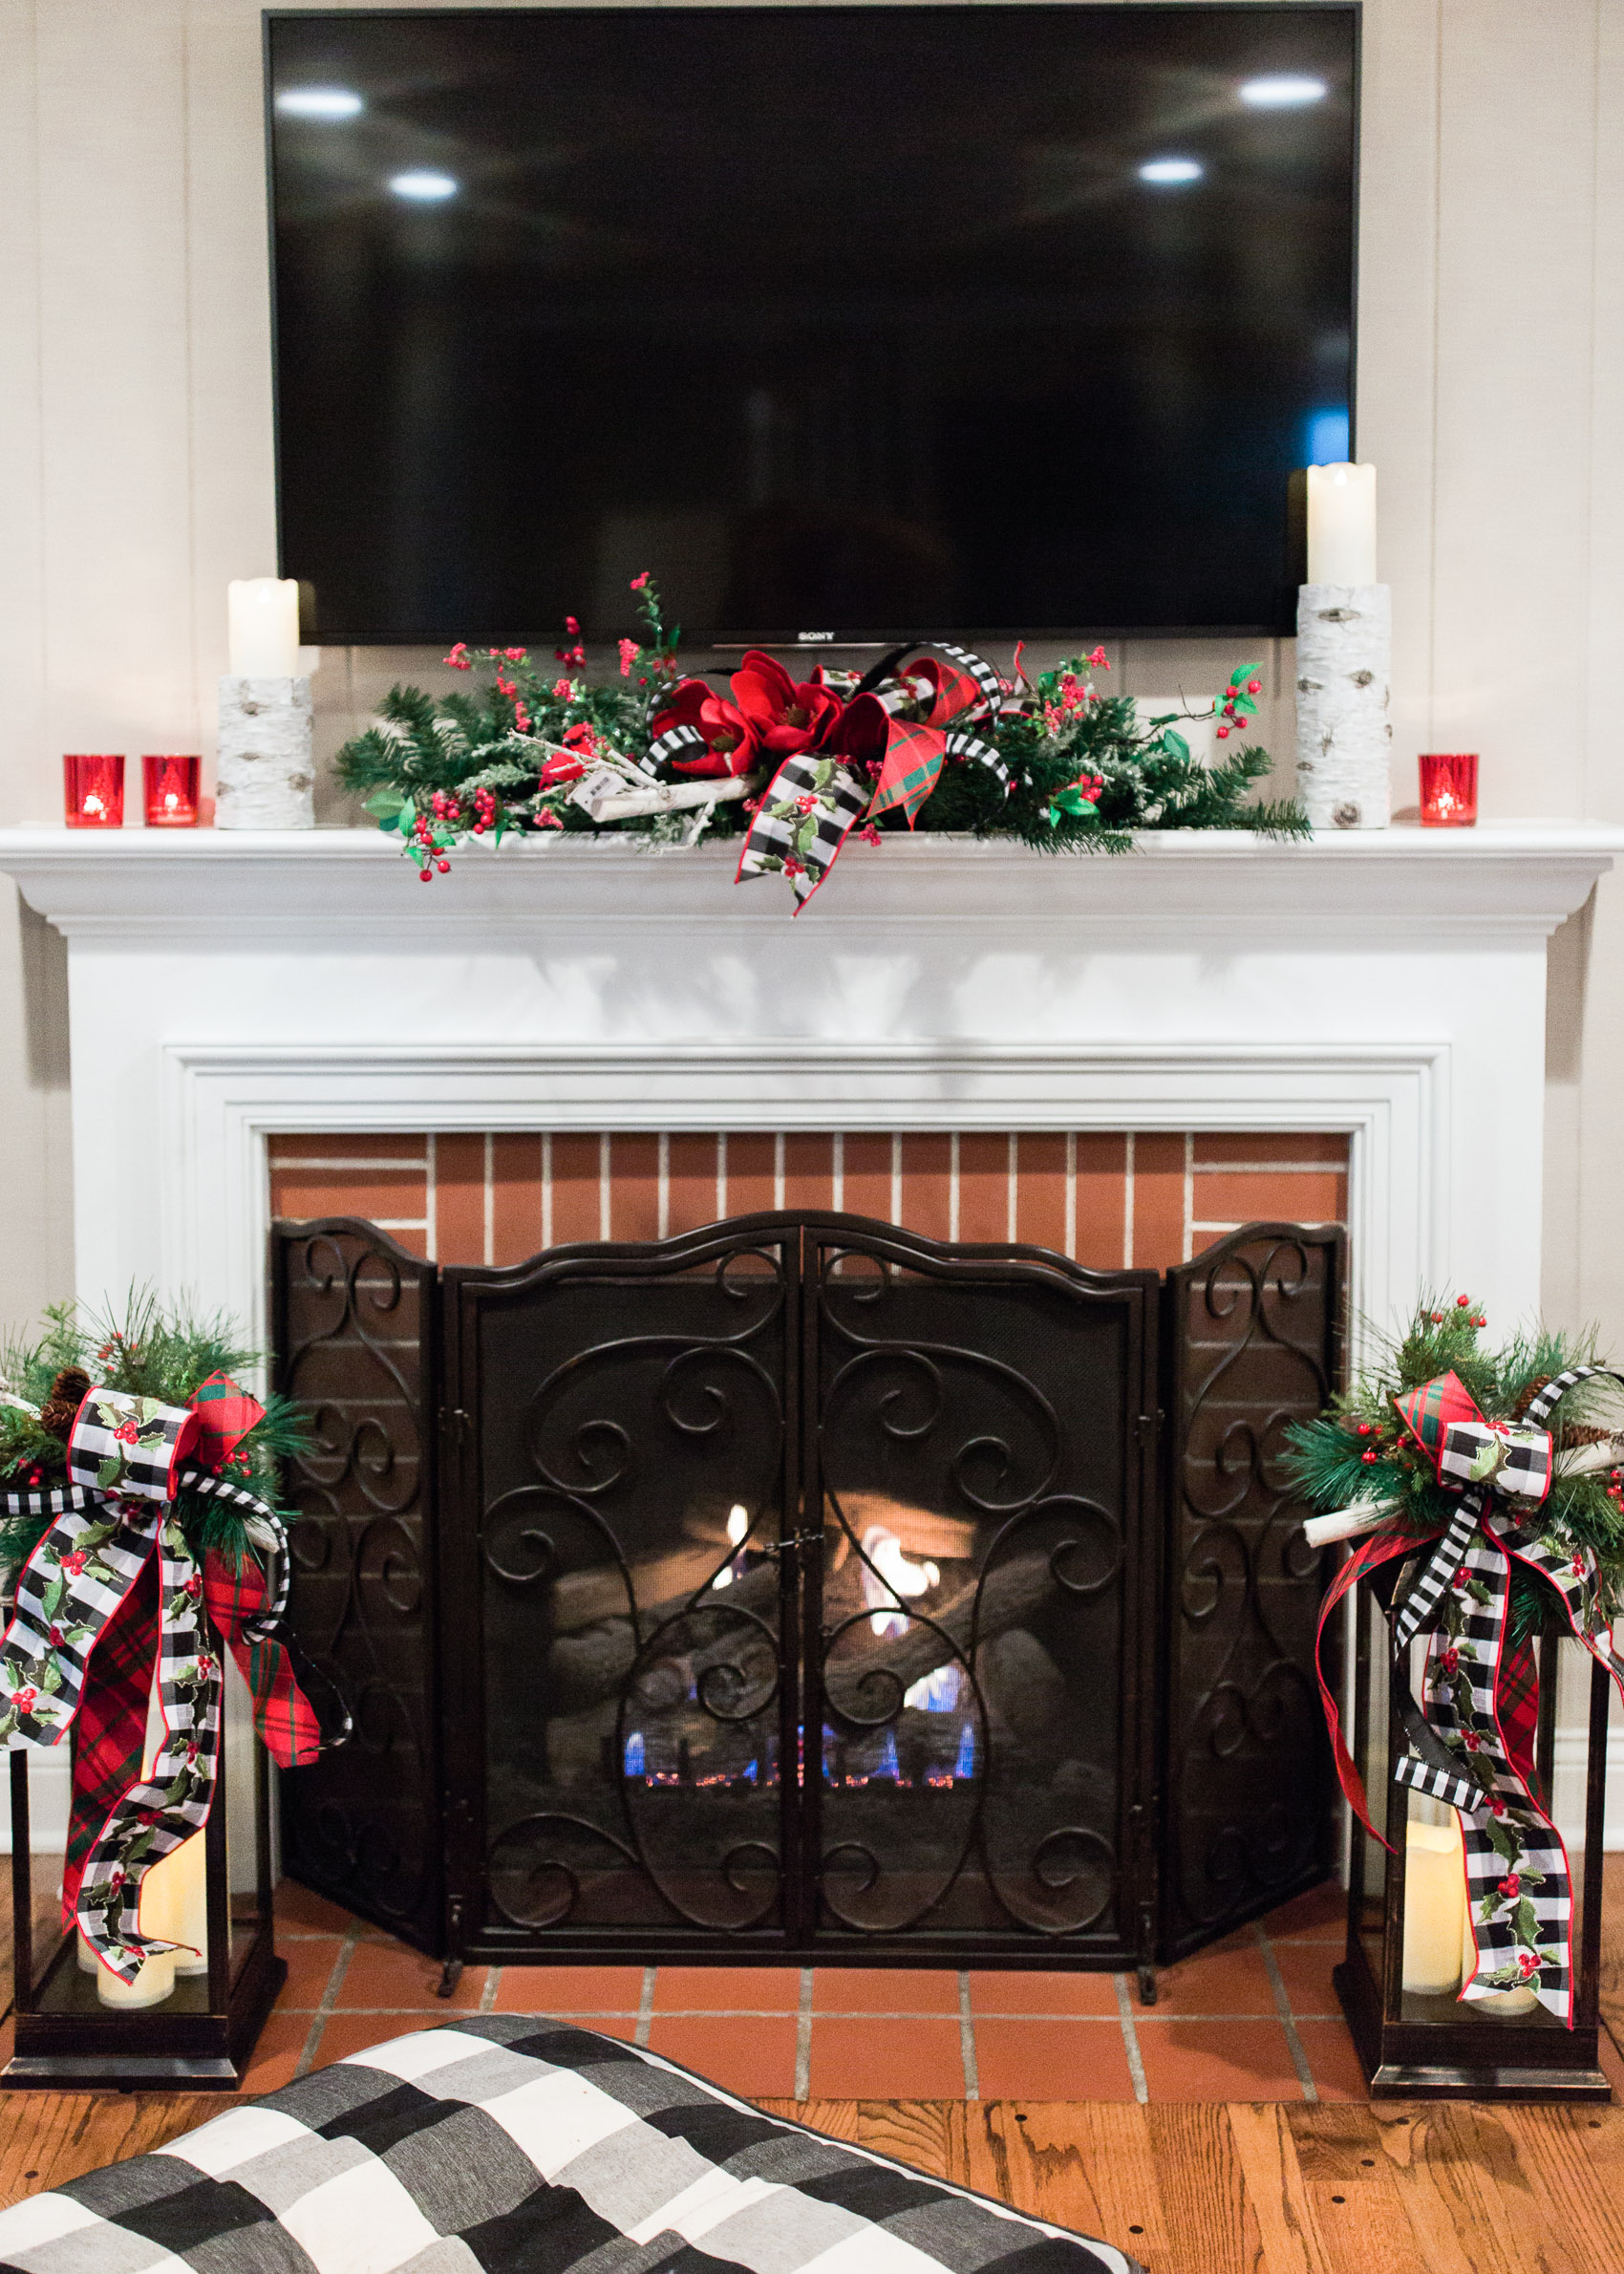 How To Decorate And Transition Your Mantel For Fall And The Holidays